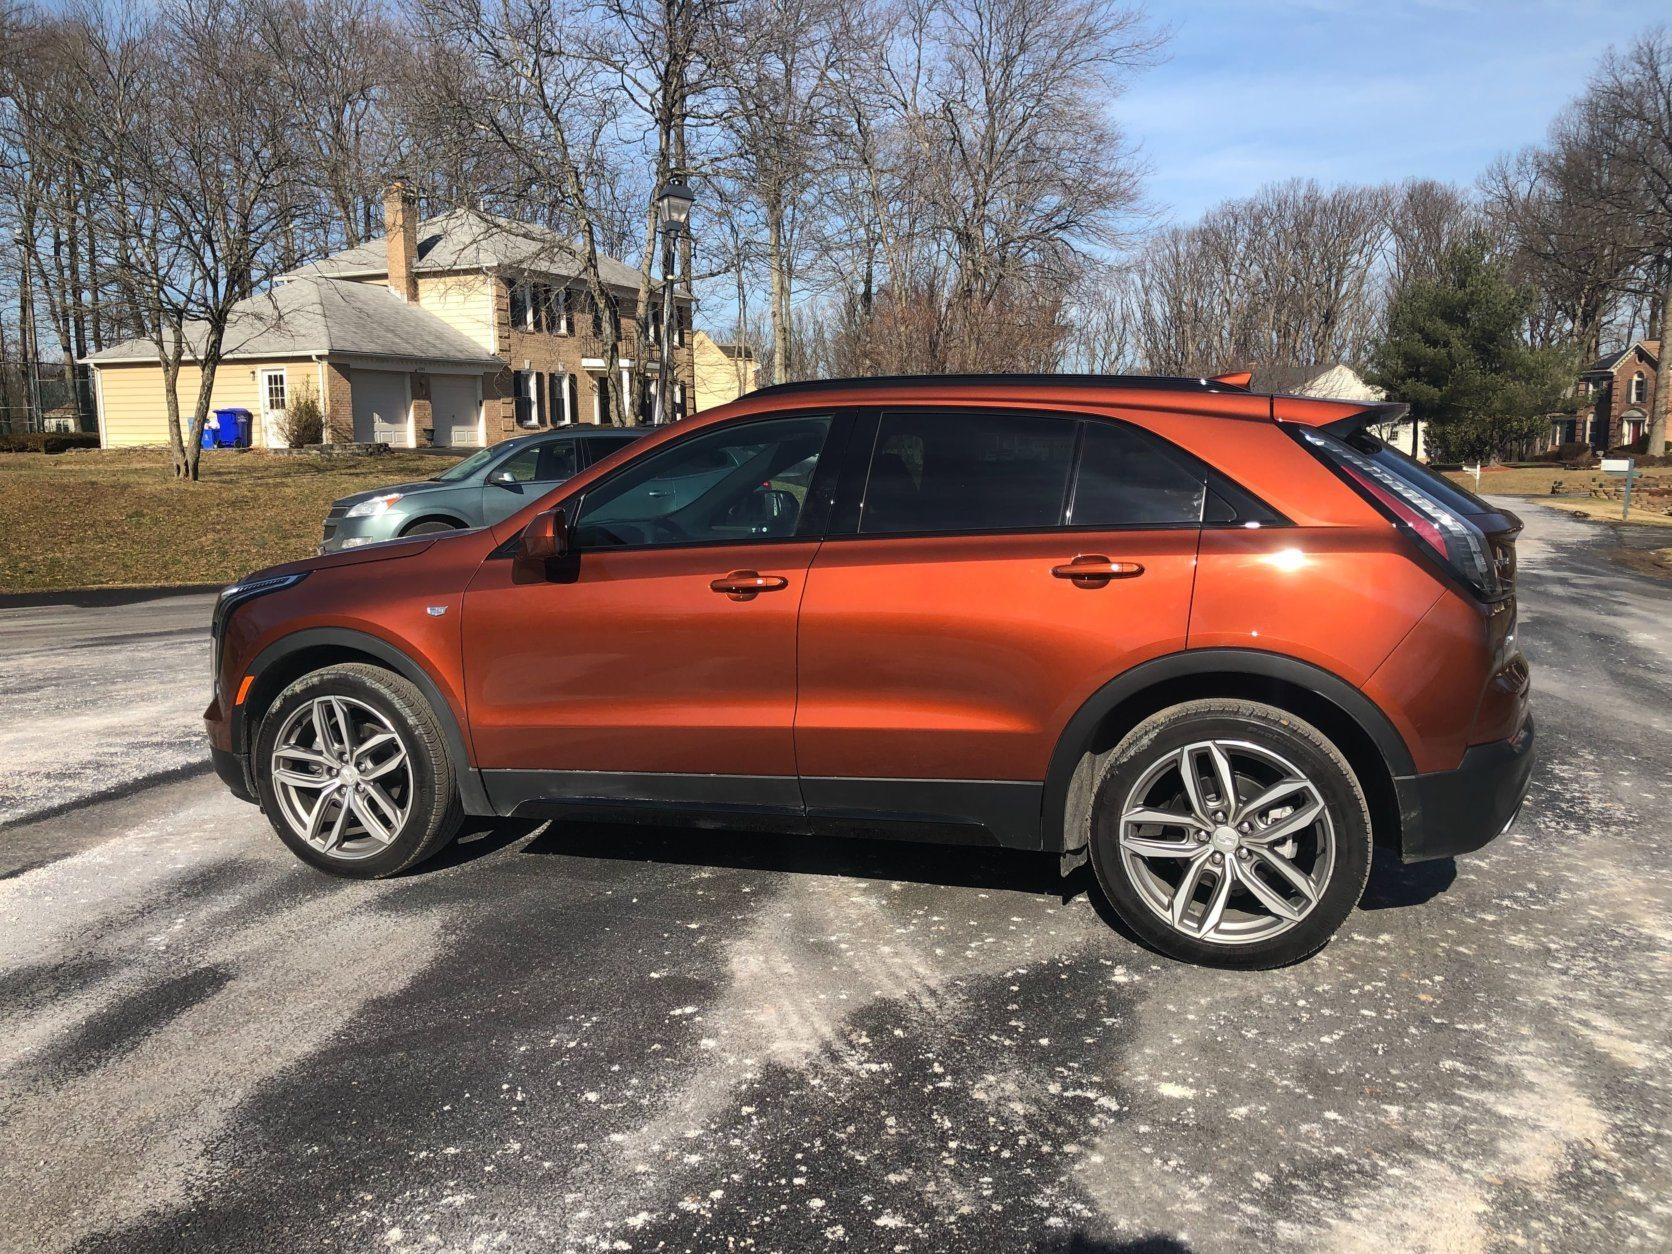 <p>Bigger 20-inch wheels are part of the Sport Dynamic package. Usually, I would frown upon the bigger wheels, but they look good on the XT4 and the suspension is also upgraded to better cope.</p> <p>Driving the Cadillac XT4 Sport proves it is the most refined of the XT4 model range. Much of that has to do with the optional Active Sport Suspension that helps keep the small crossover a smooth operator under most road conditions.</p> <p>But the suspension can get a bit busy on poor road surfaces transmitting into the cabin. I found the handling solid and happier as a normal crossover. It feels a bit heavy when pushed in the turns. The 2.0L four-cylinder turbo is the only engine and it moves the XT4 well.</p>